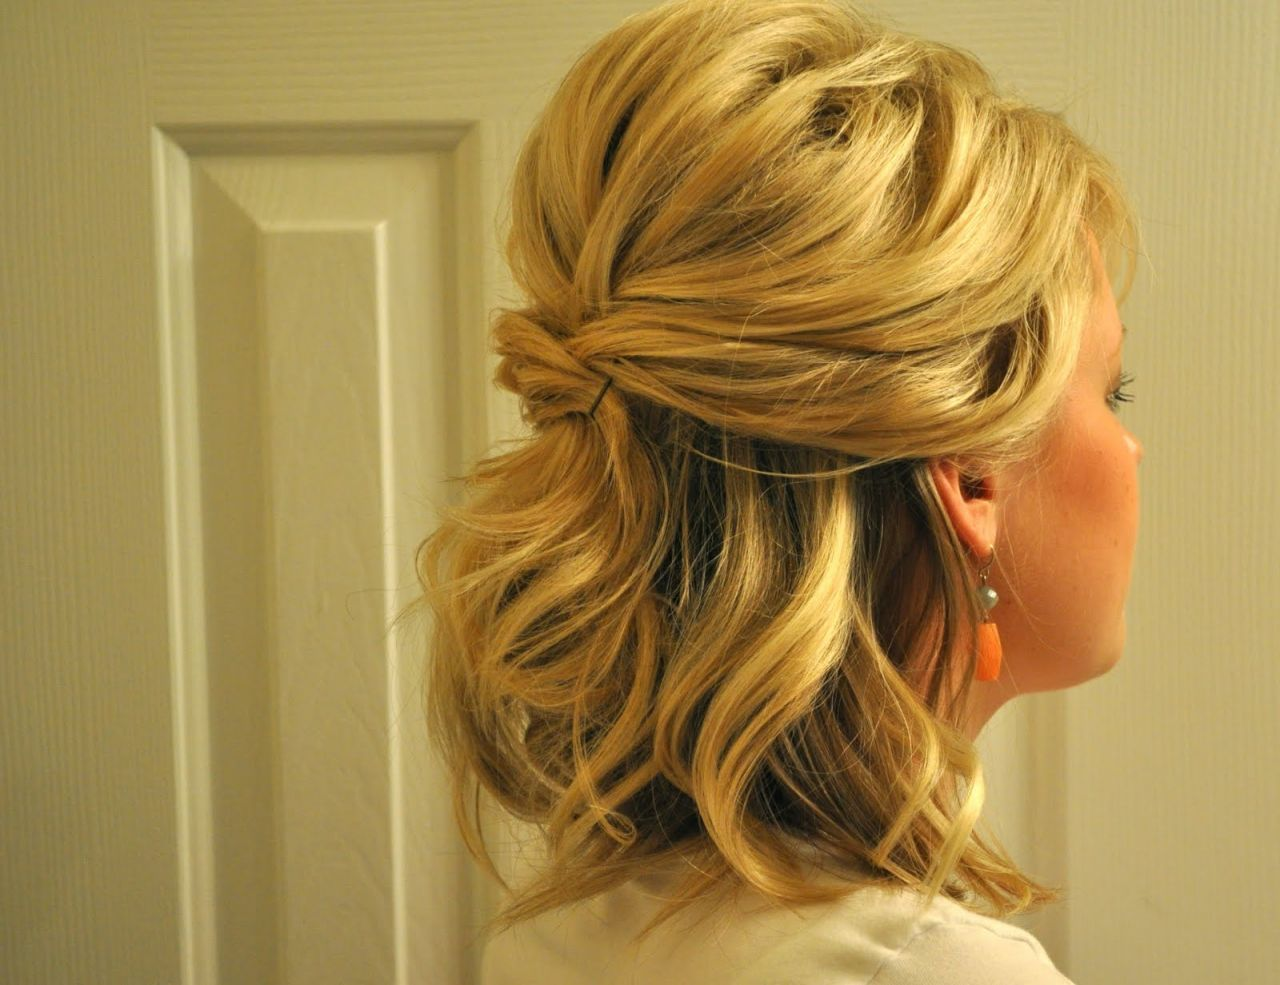 Hairstyles For Curly Hair Half Up Half Down Prom ...